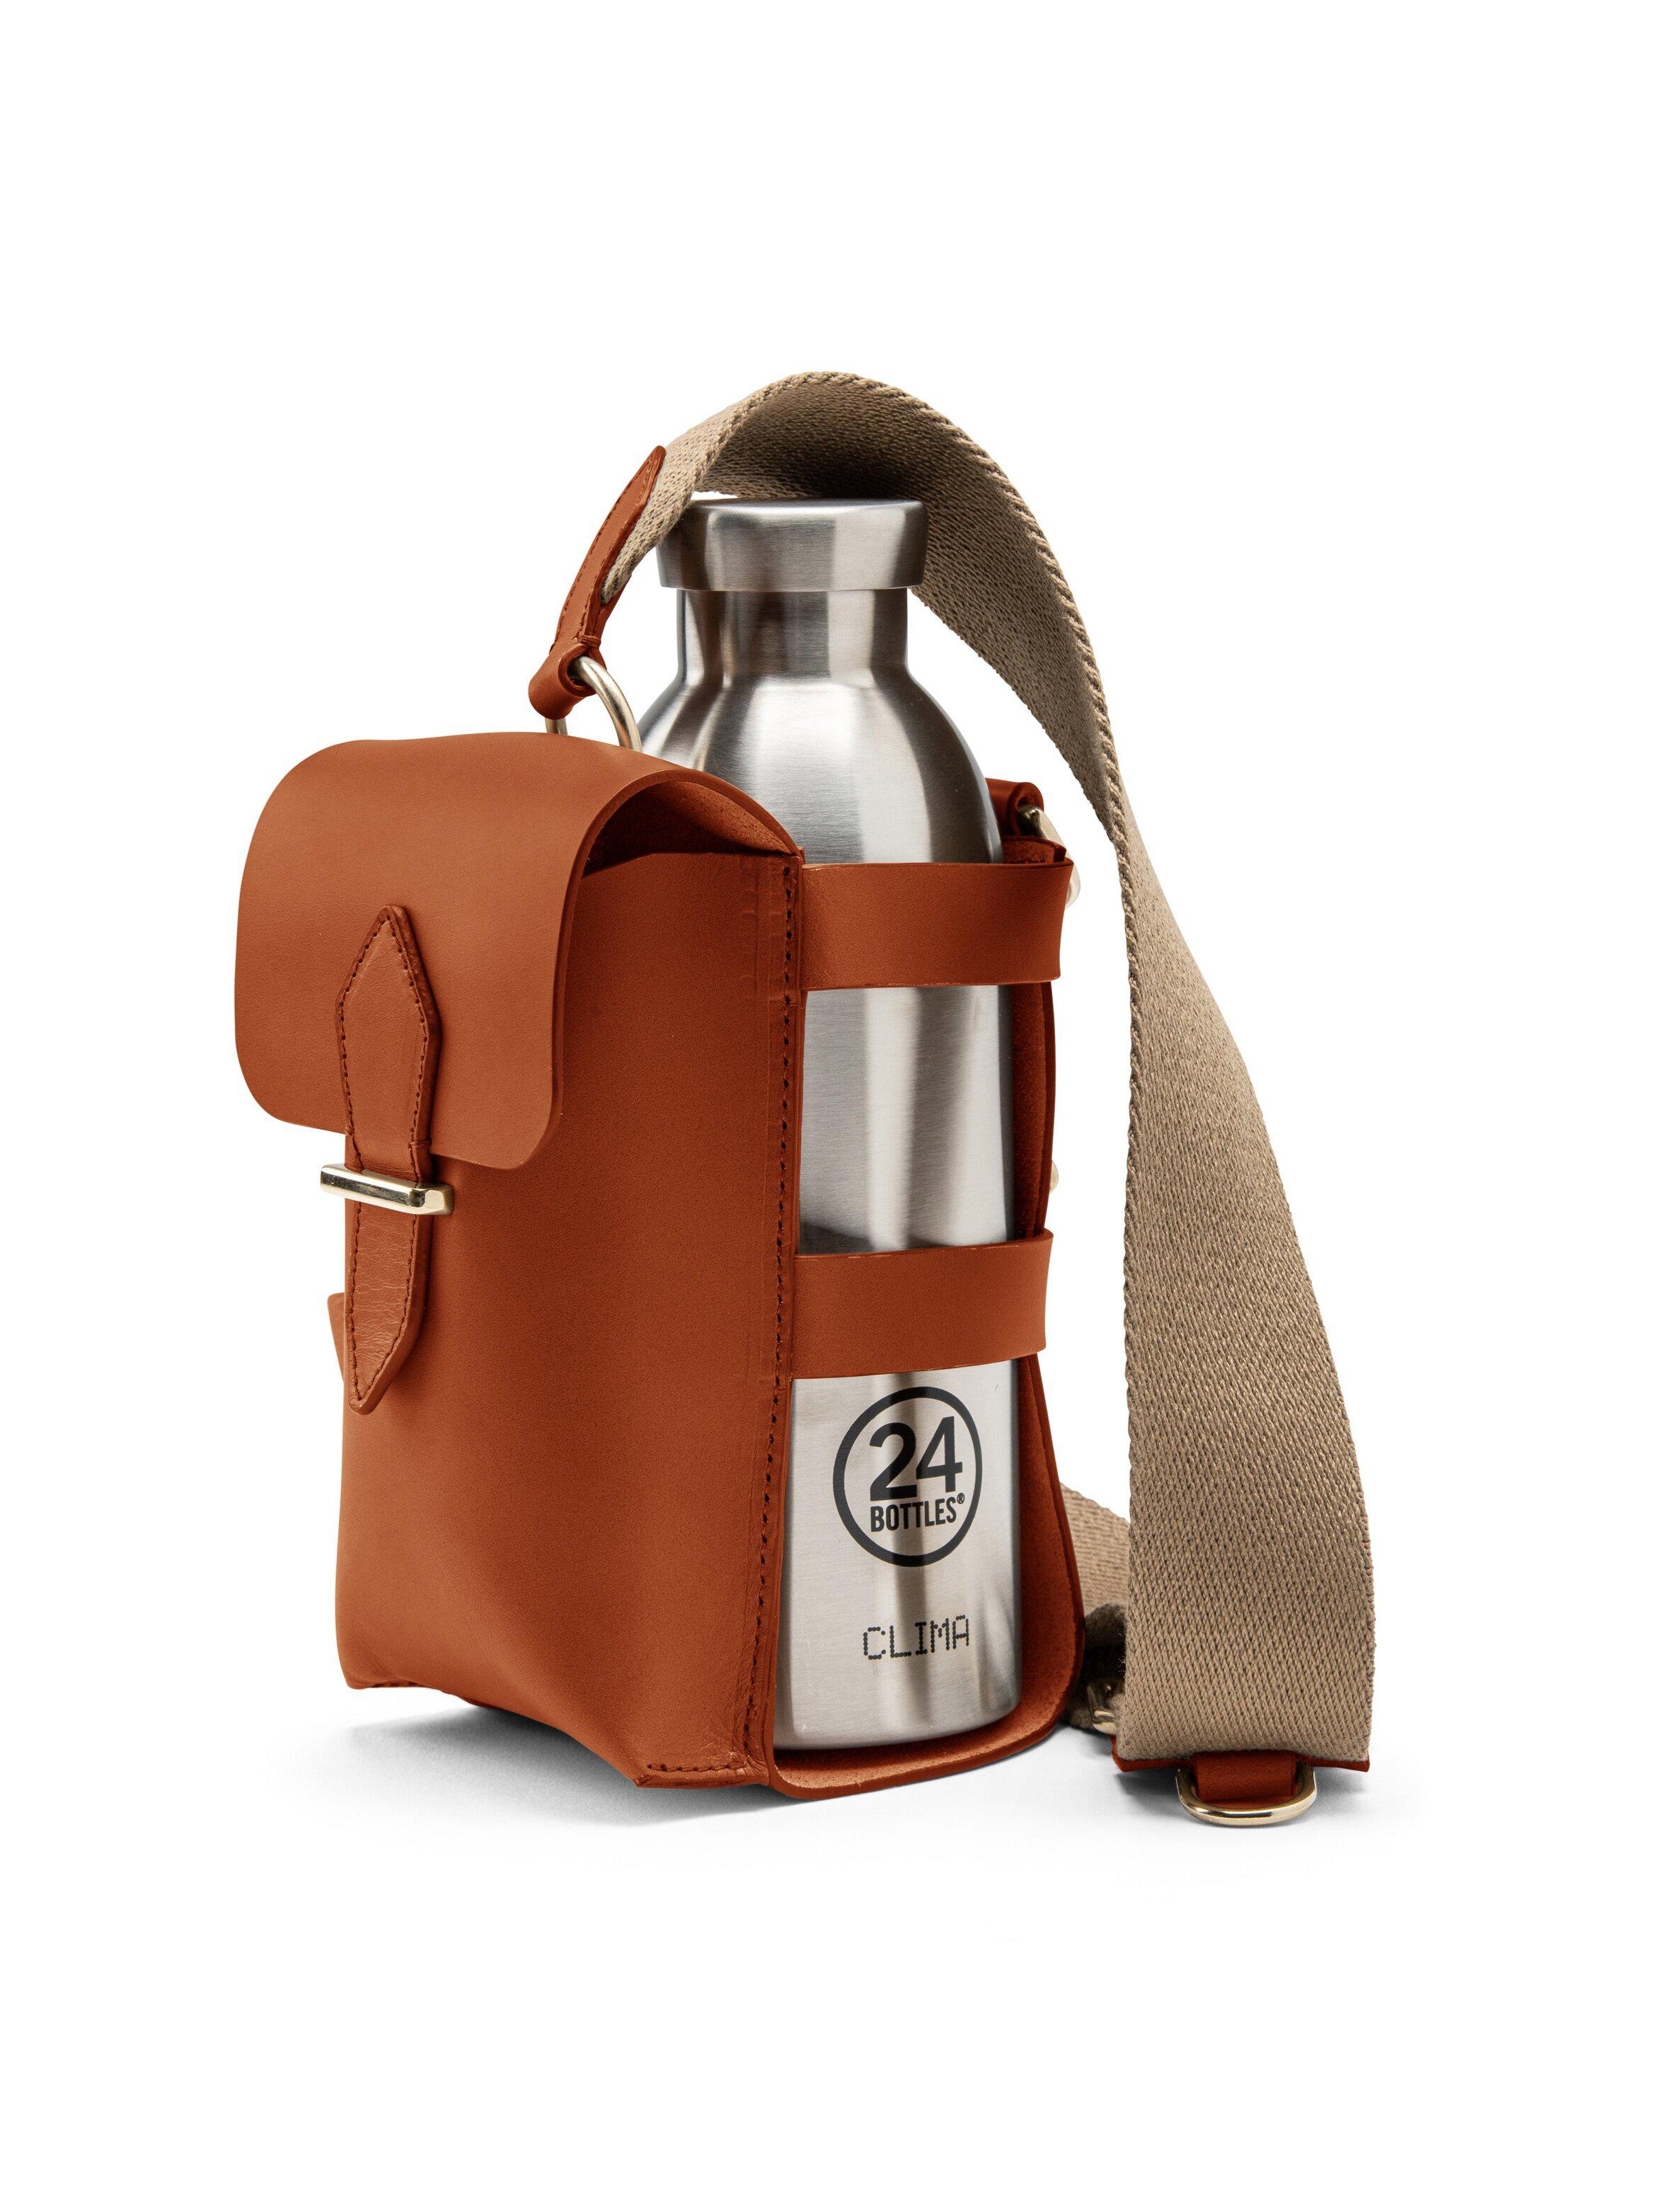 Bottle Bag with Pocket and Bottle - Tan Leather